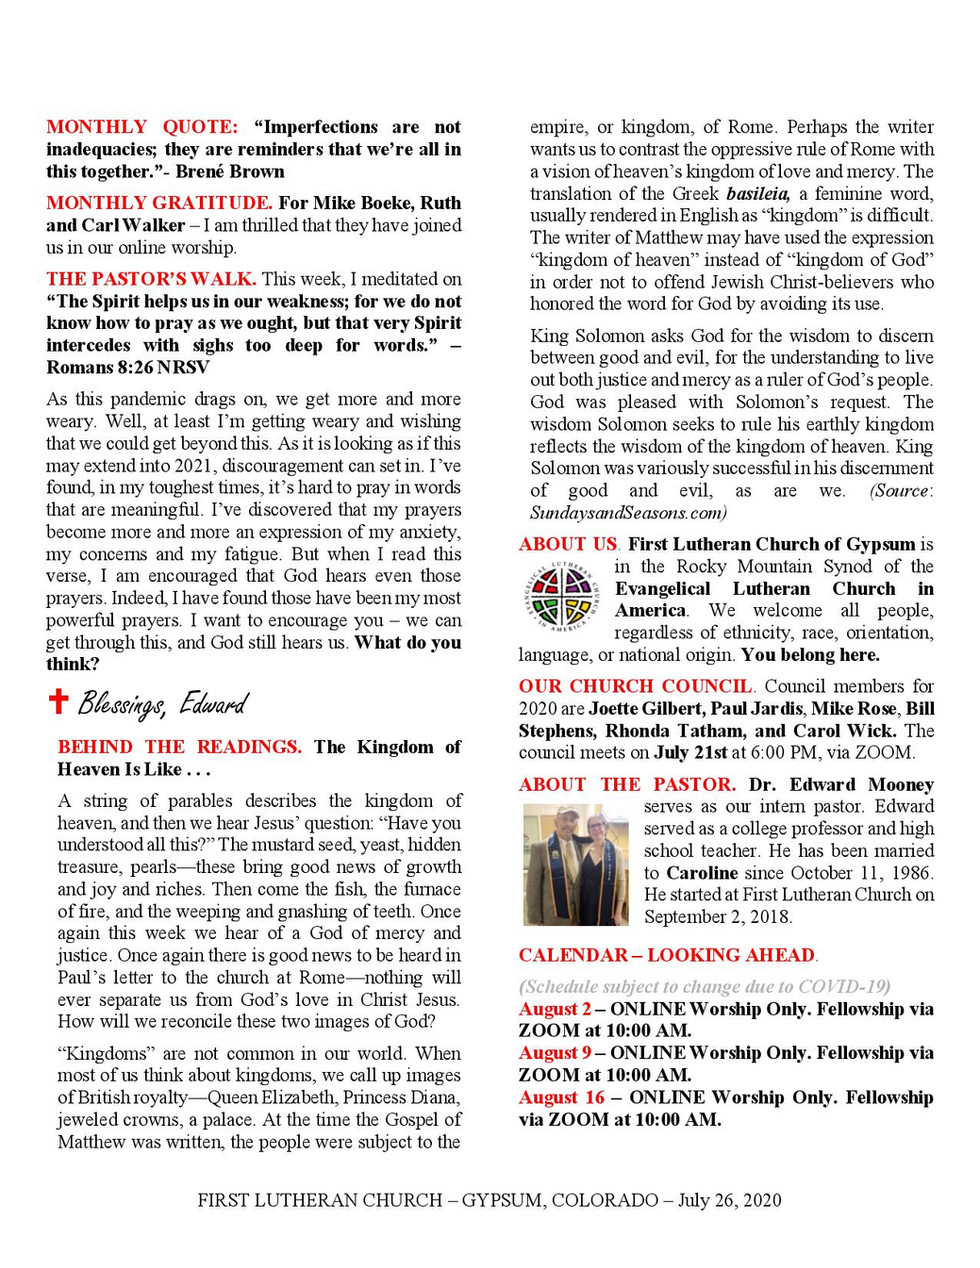 Newsletter, July 26, 2020, page 2